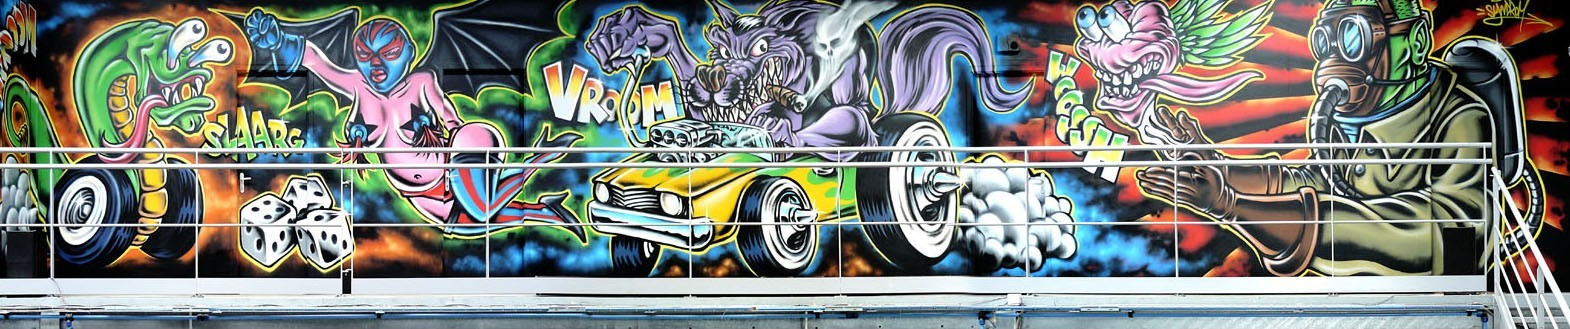 fresque-graffiti-garage-rocknroll-monster